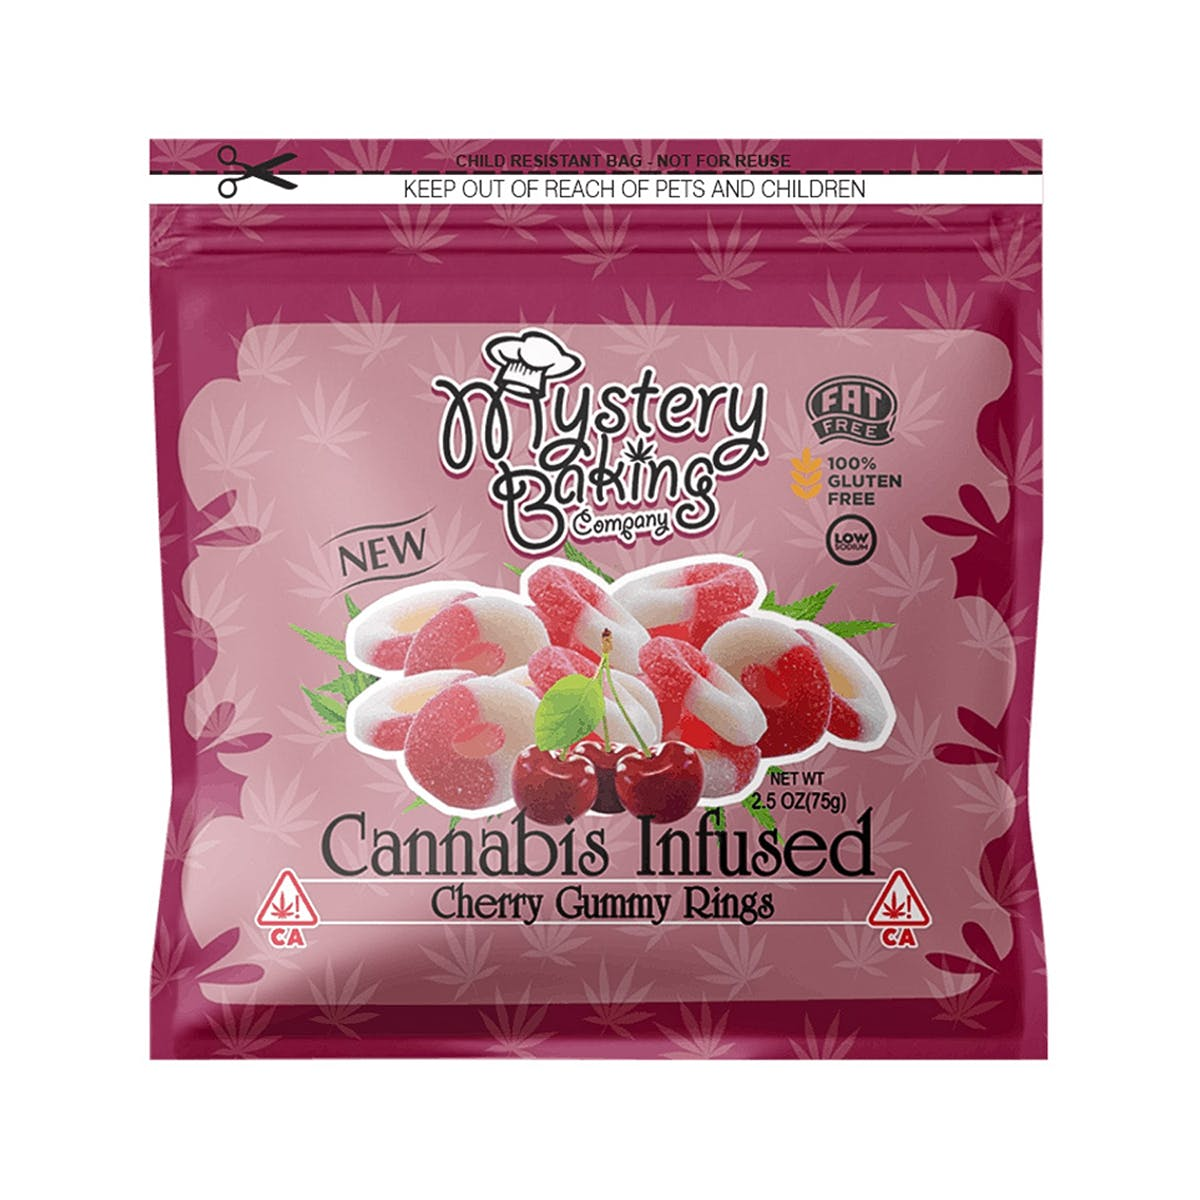 marijuana-dispensaries-pasadena-cannabis-collective-pcc-in-pasadena-cherry-gummy-rings-100mg